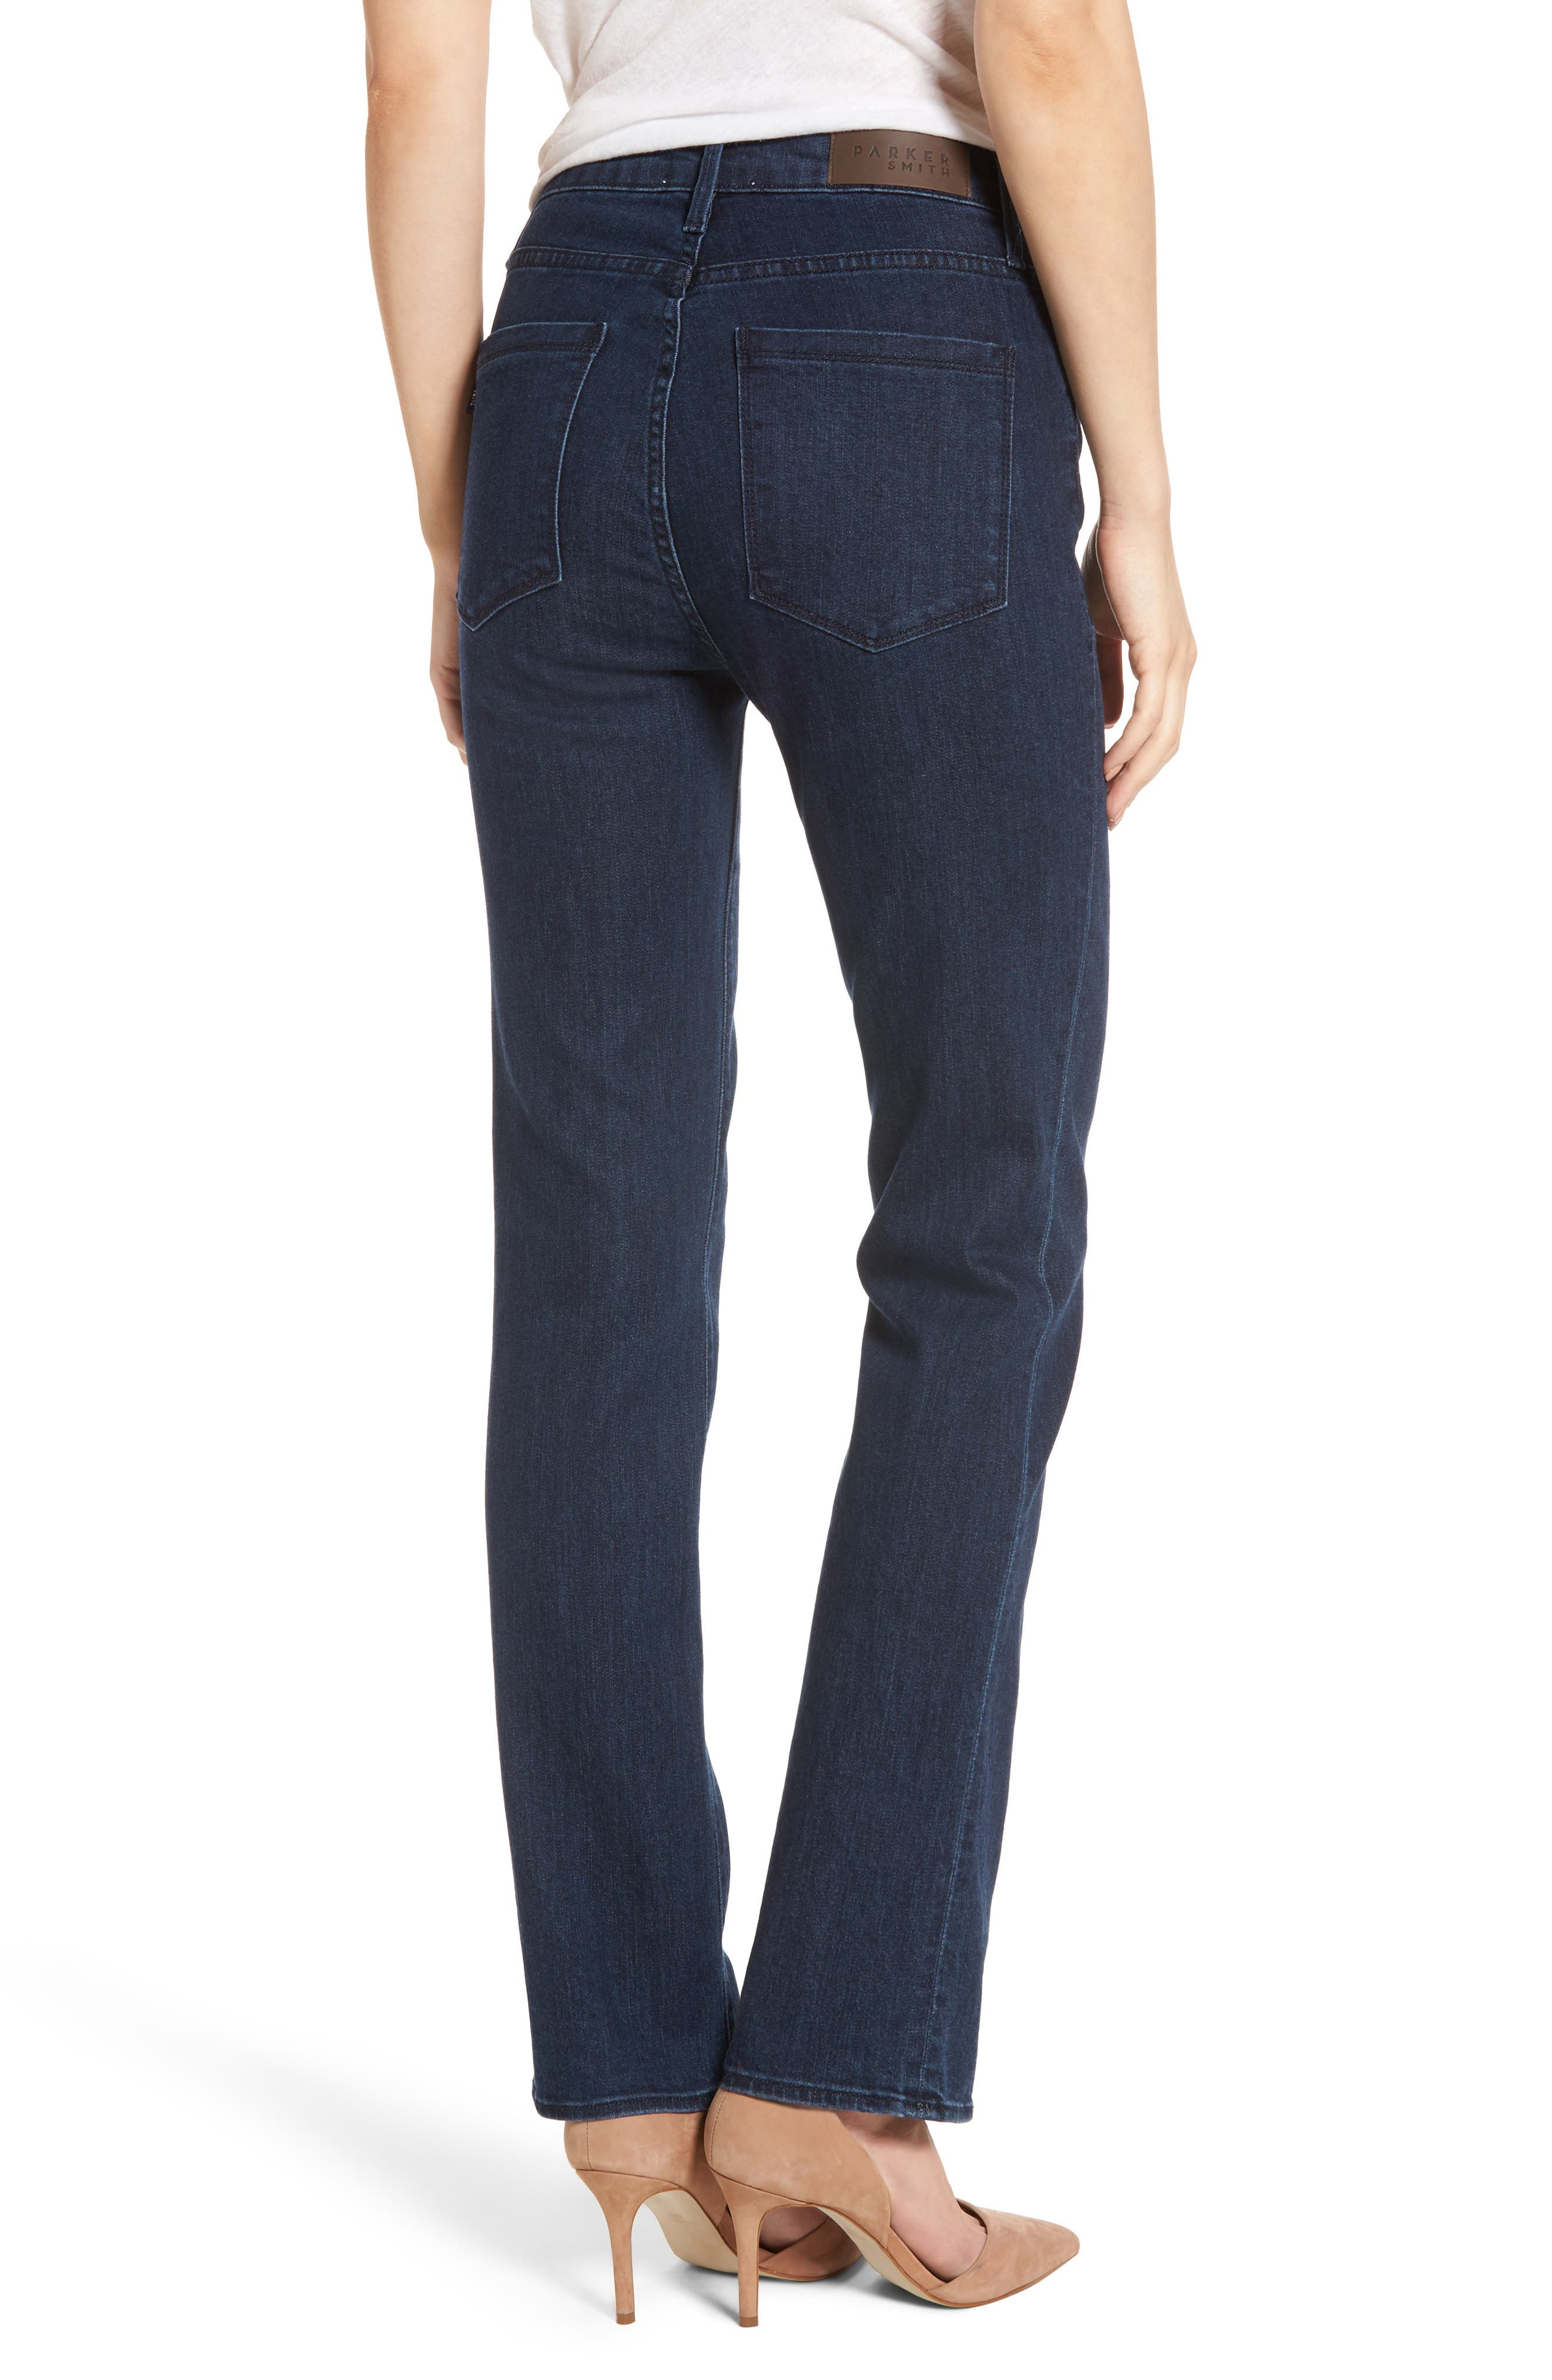 Alternate Image 2  - PARKER SMITH Bombshell Runaround Straight Leg Jeans (Baltic)